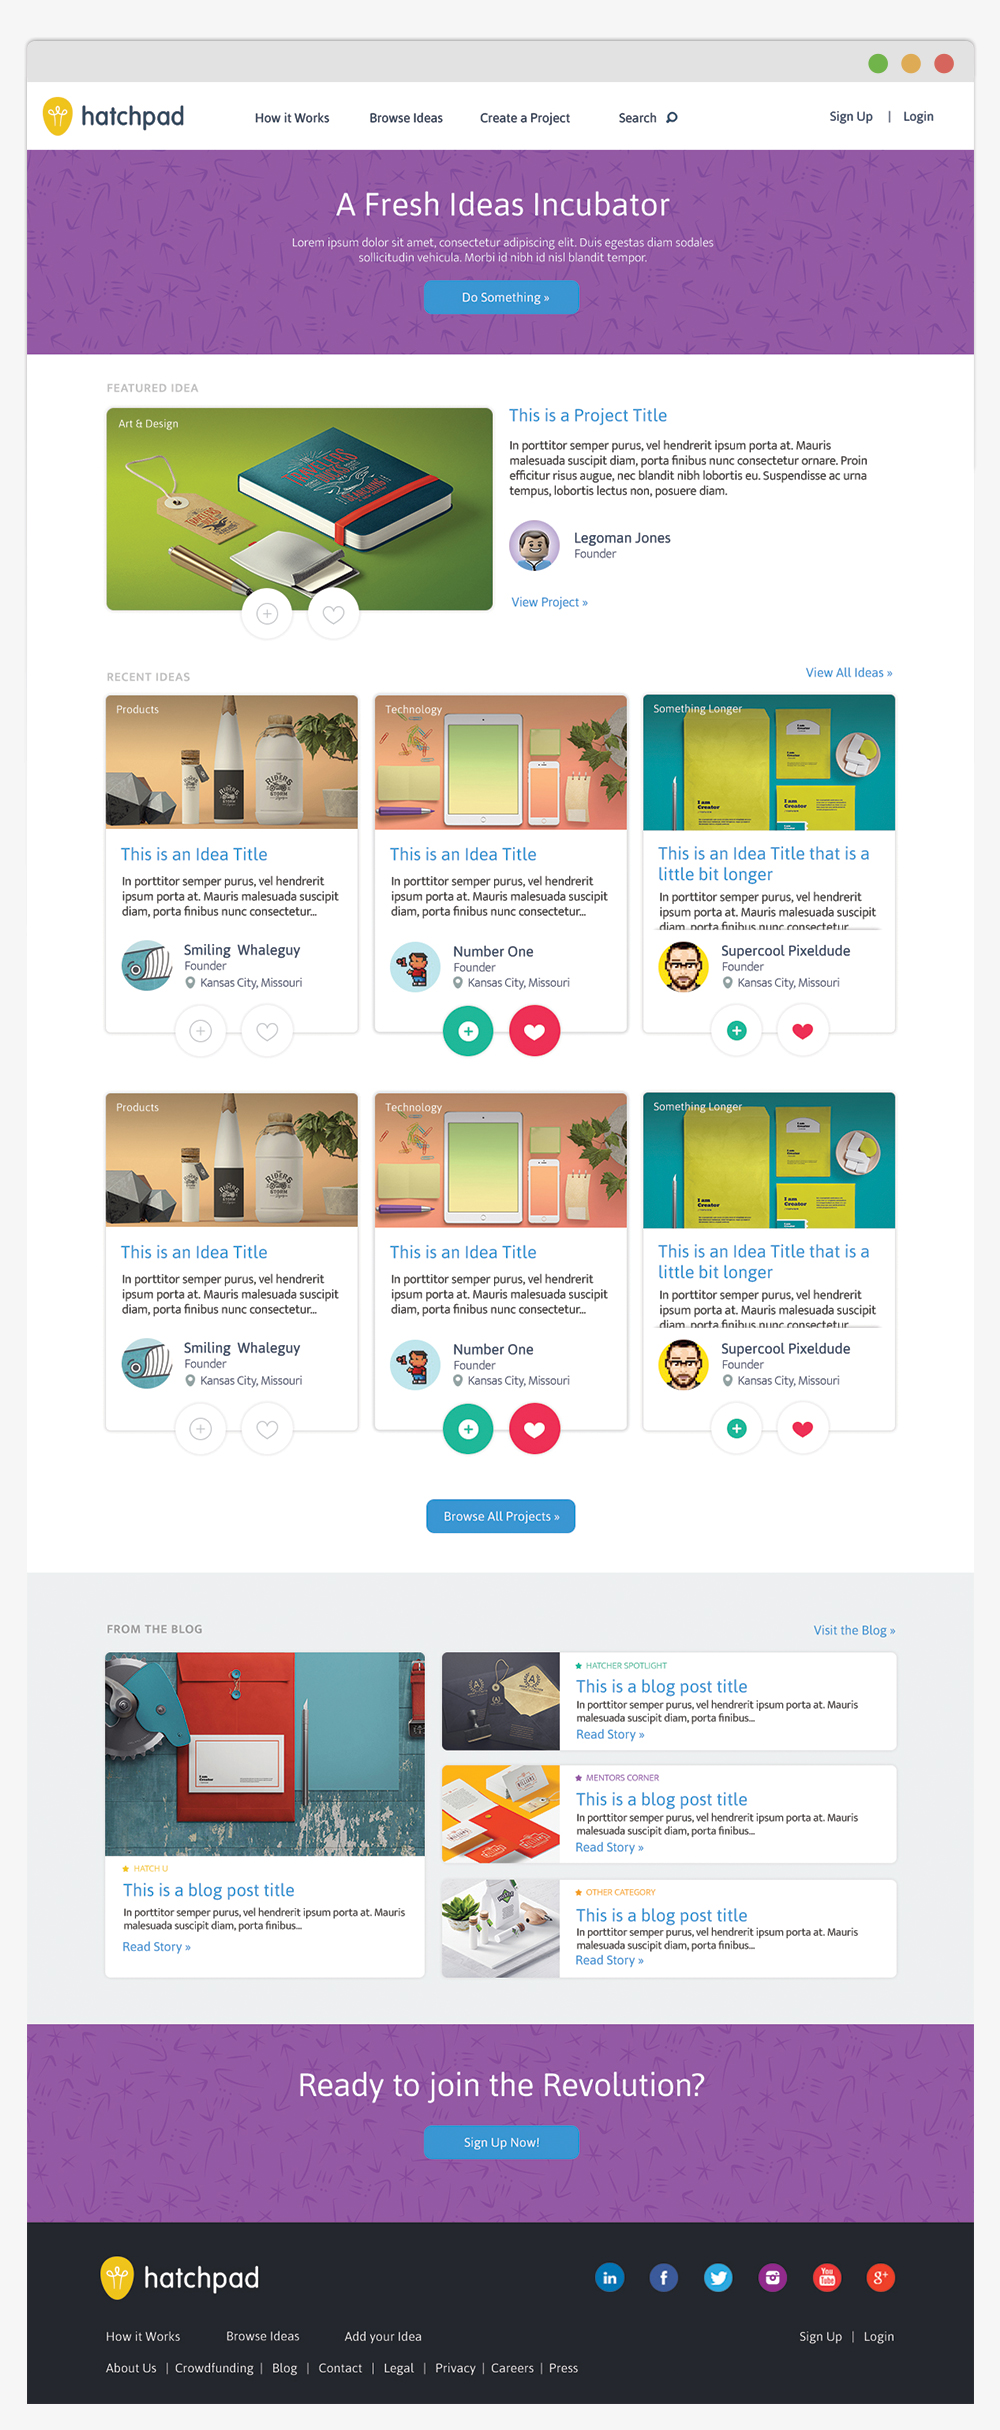 hatchpad homepage design